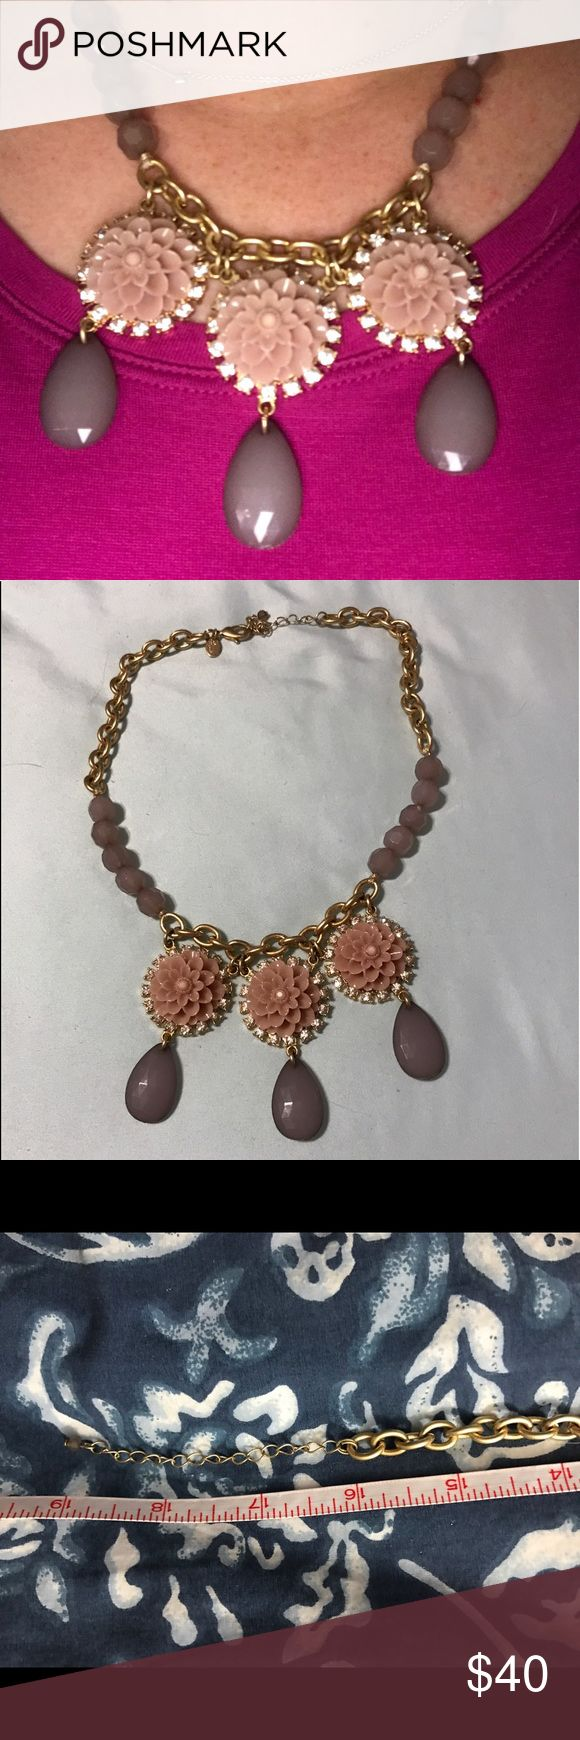 "Lia Sophia Statement Necklace Beautiful and vintage looking necklace! 16"" long with extender to make it 19"". Minimal wear in excellent condition! No trades! Nonsmoking home. Lia Sophia Jewelry Necklaces"